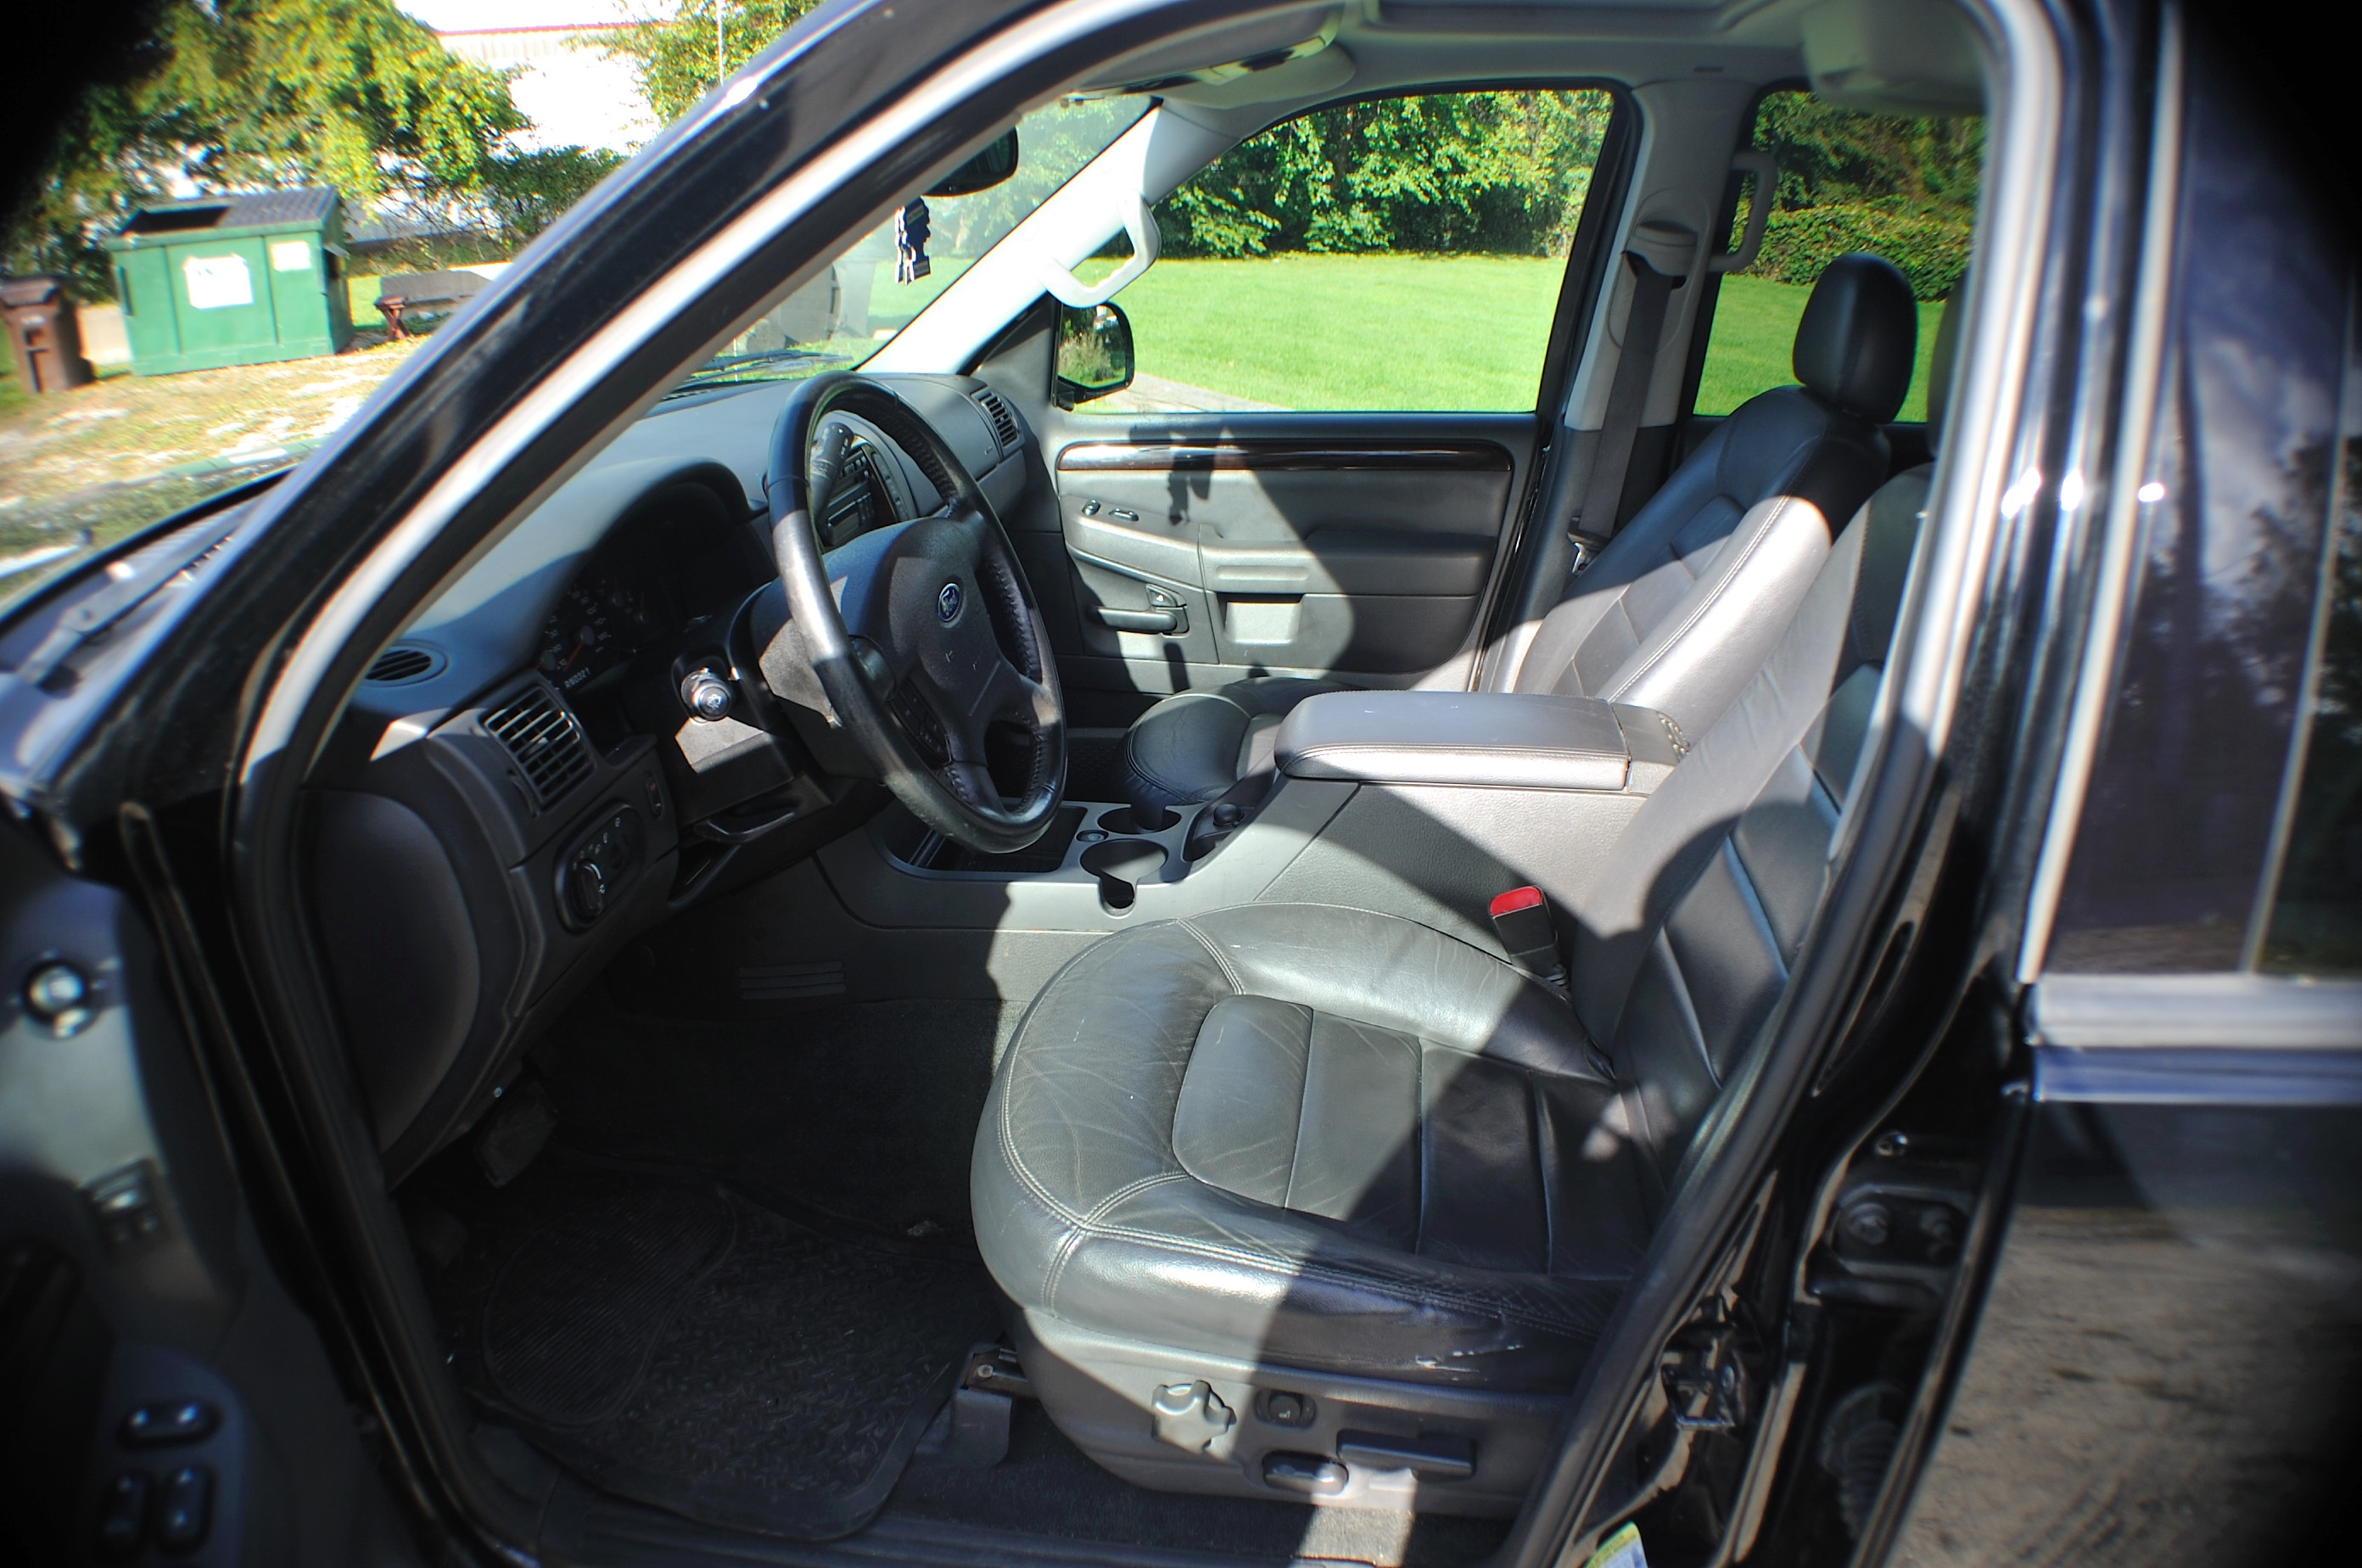 2004 Ford Explorer XLT Black Limited Used SUV 4x4 Sale Highland Park Kildeer Winthrop Harbor